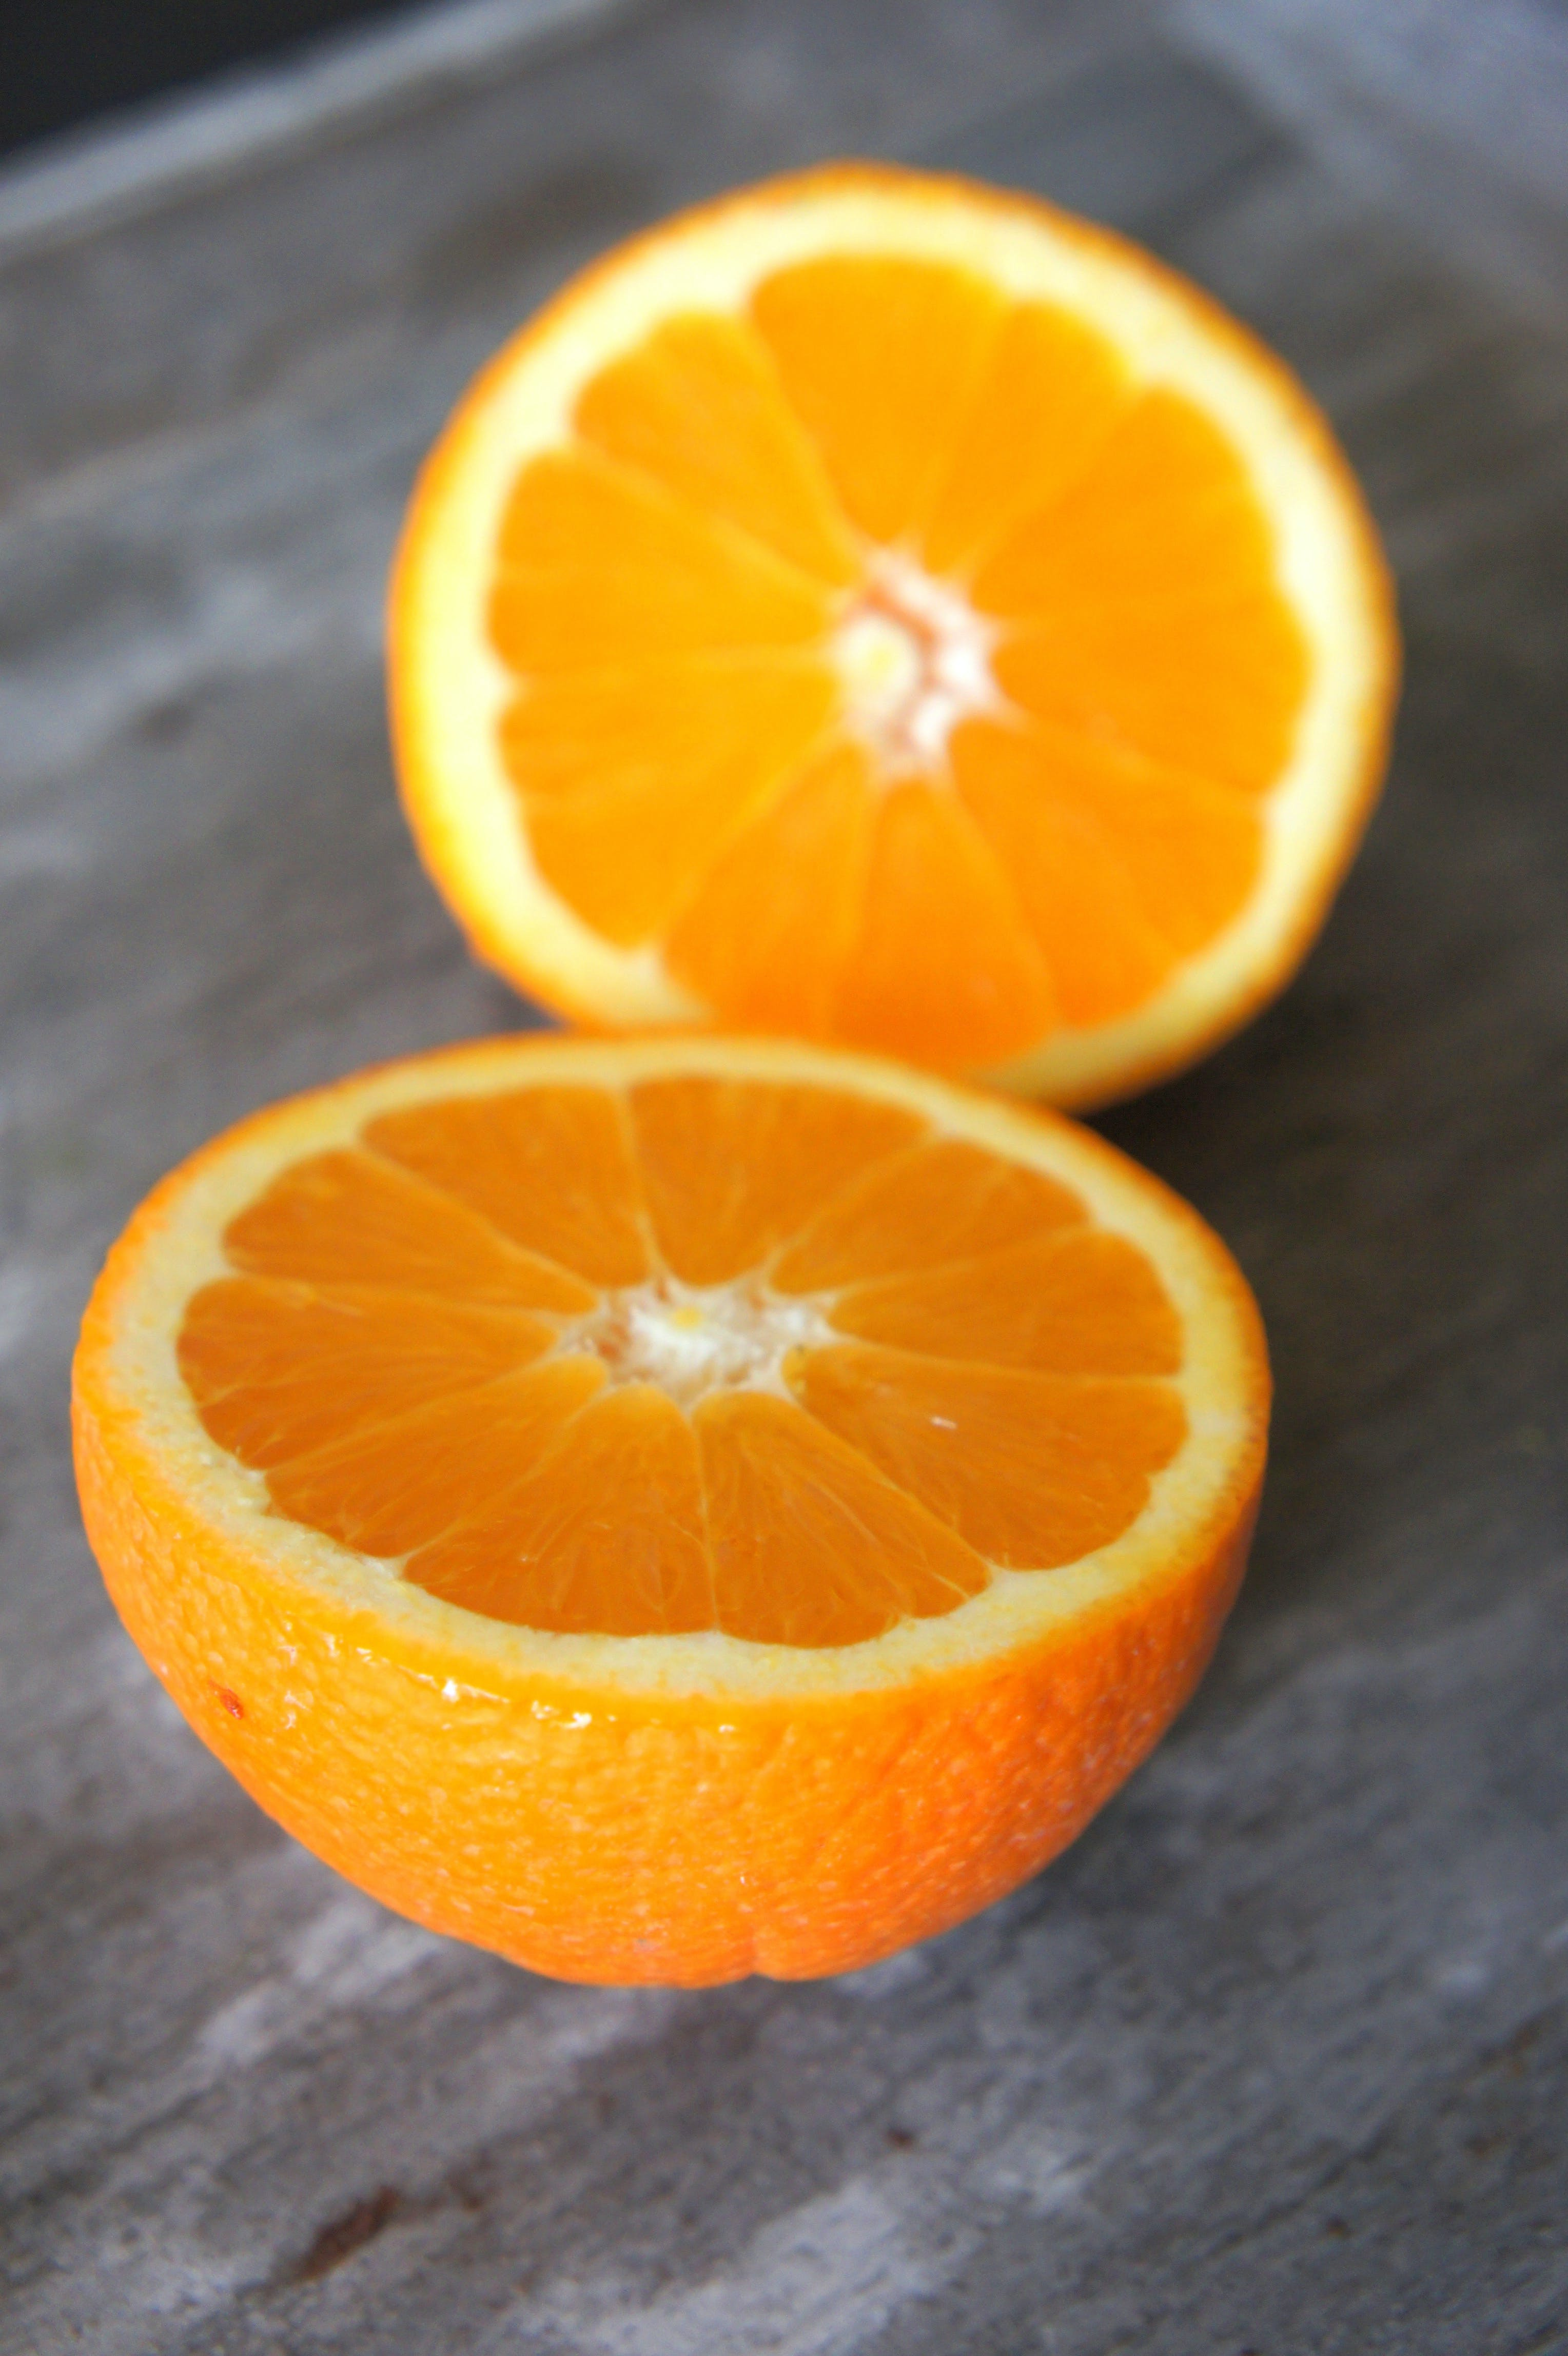 Sliced Orange Fruit